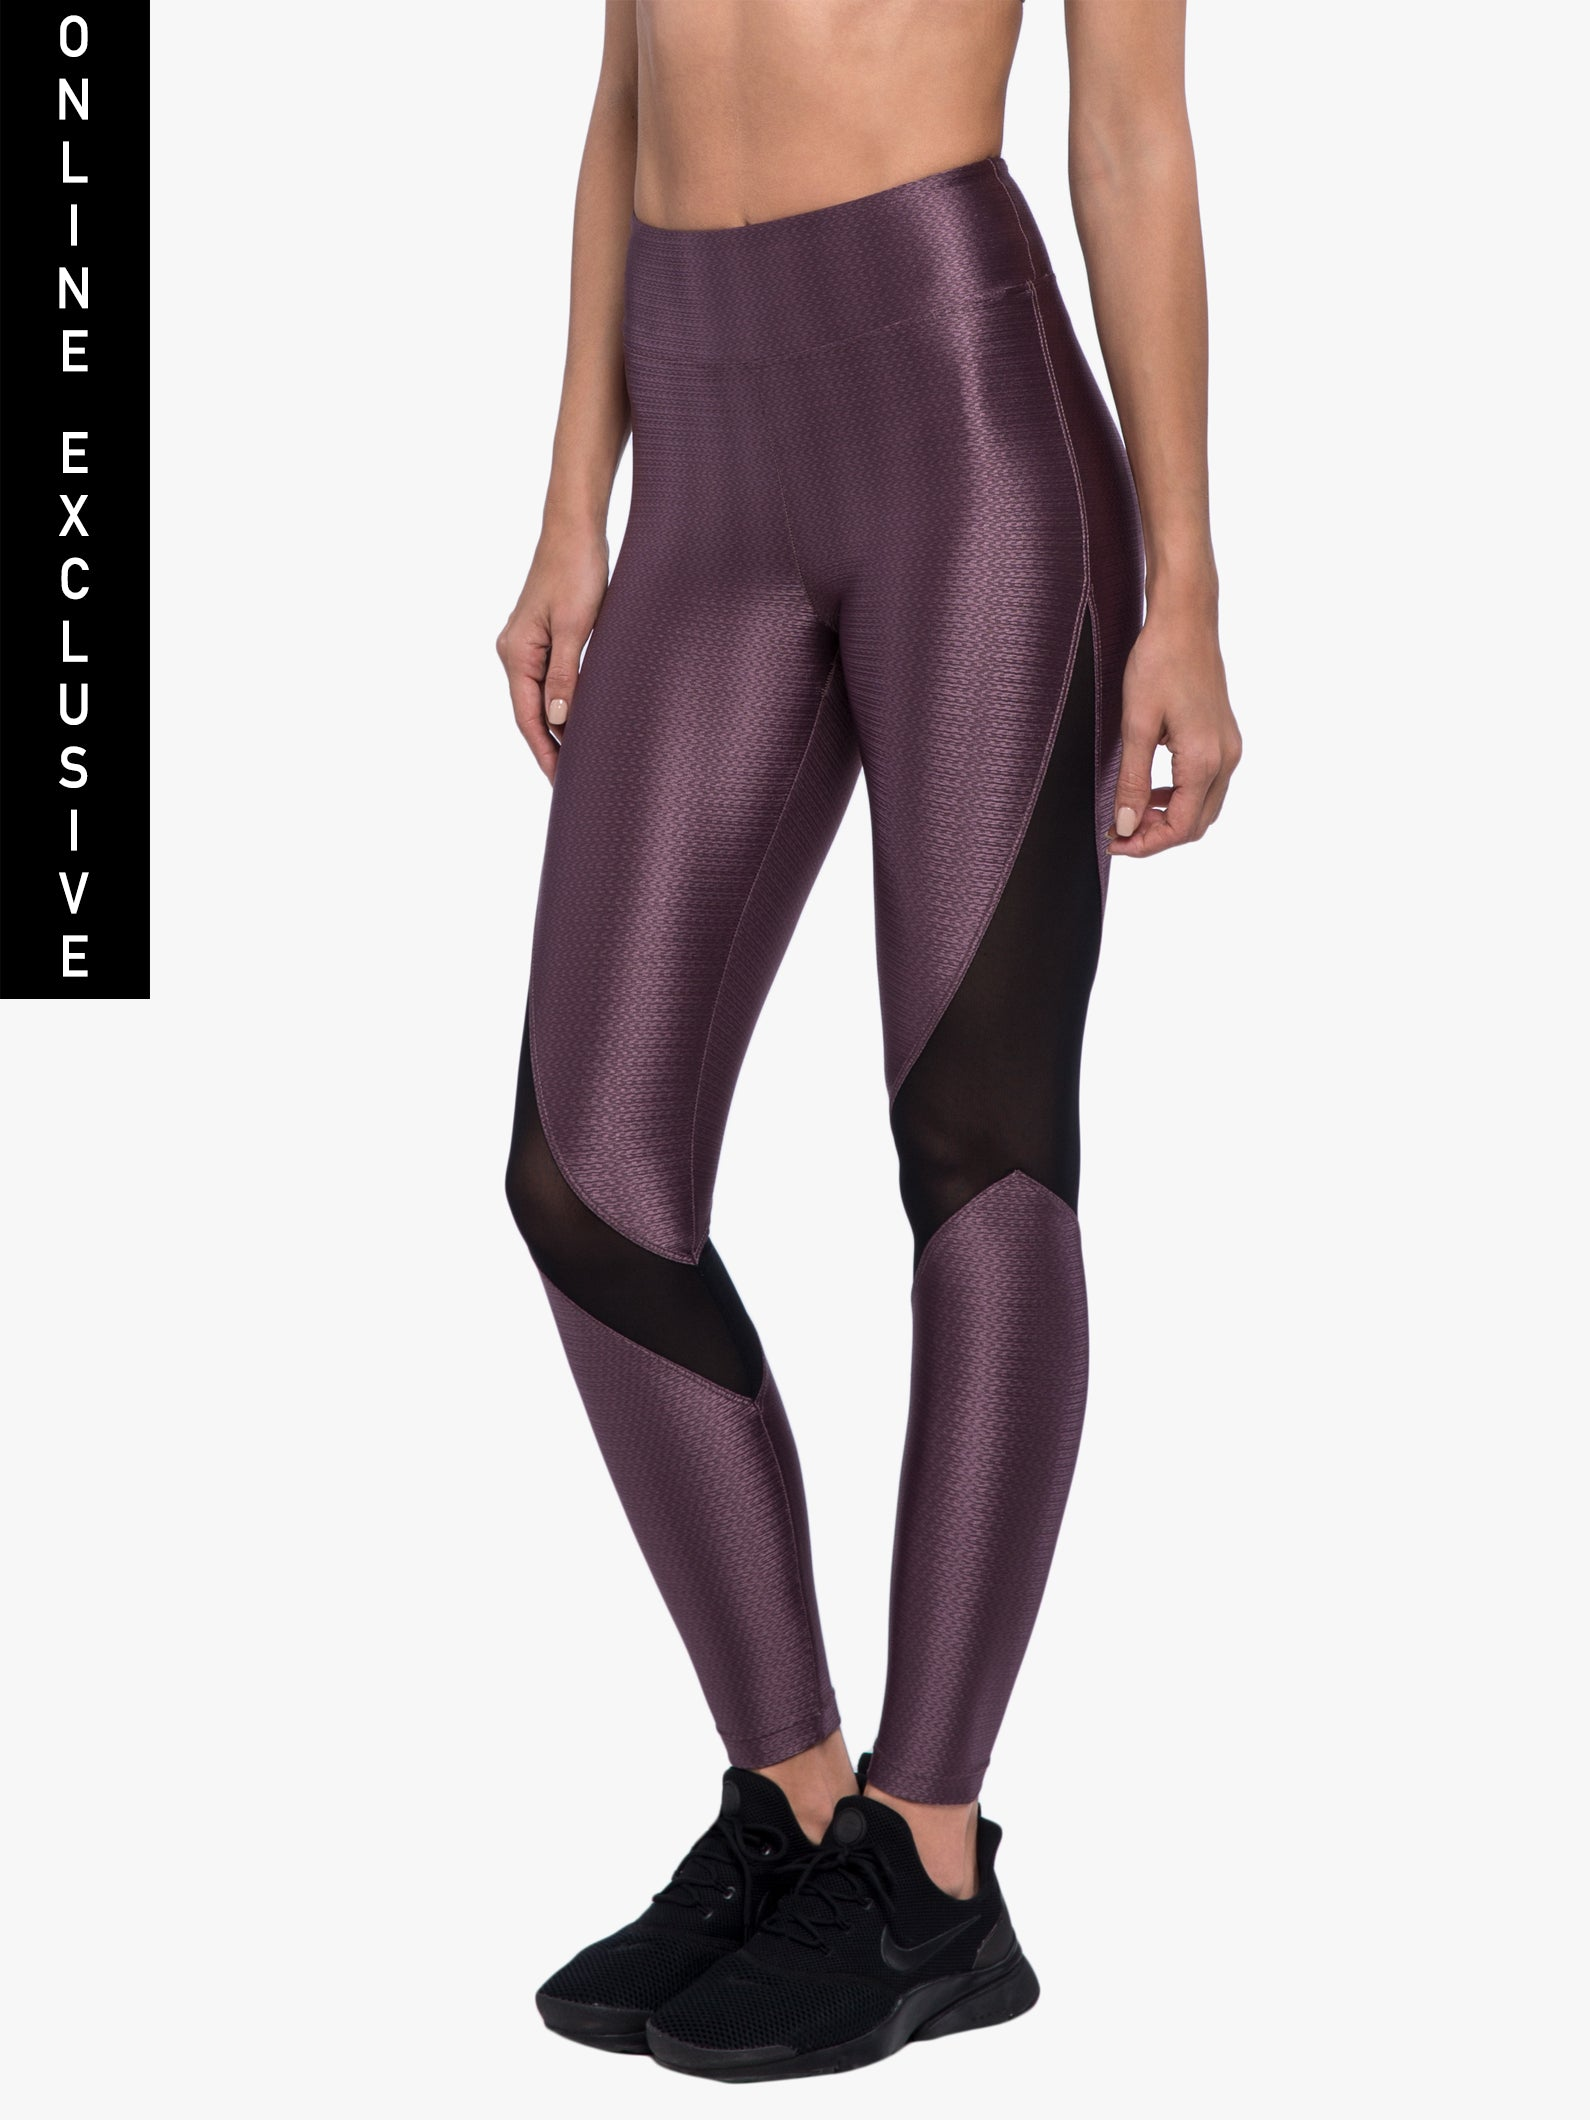 Sap High Rise Charge Legging - Black Plum